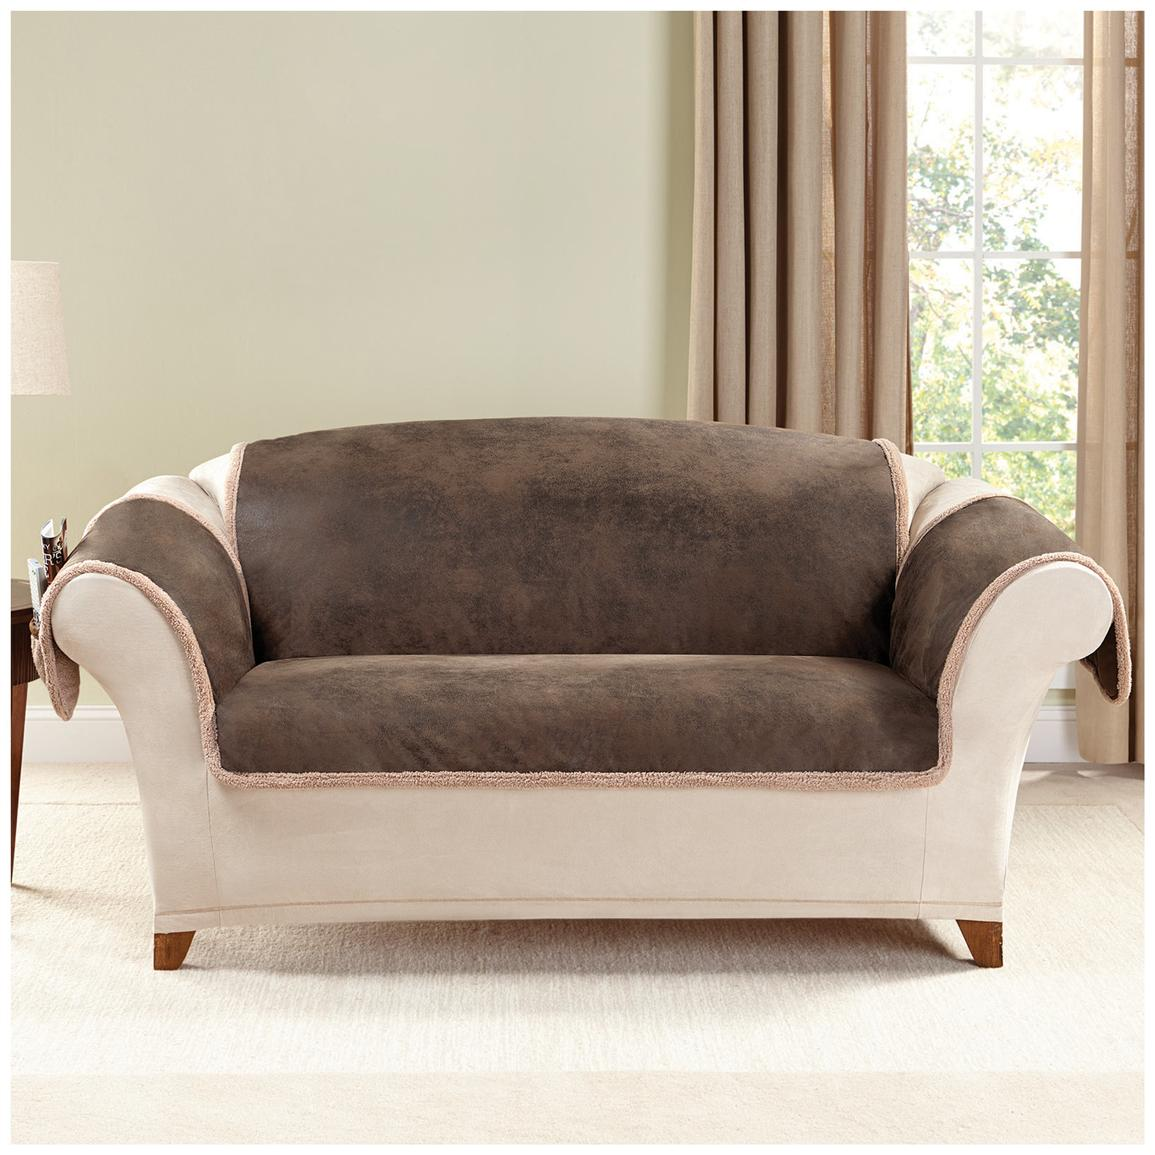 Love Seat Slip Covers For Stunning Outlook In The Living